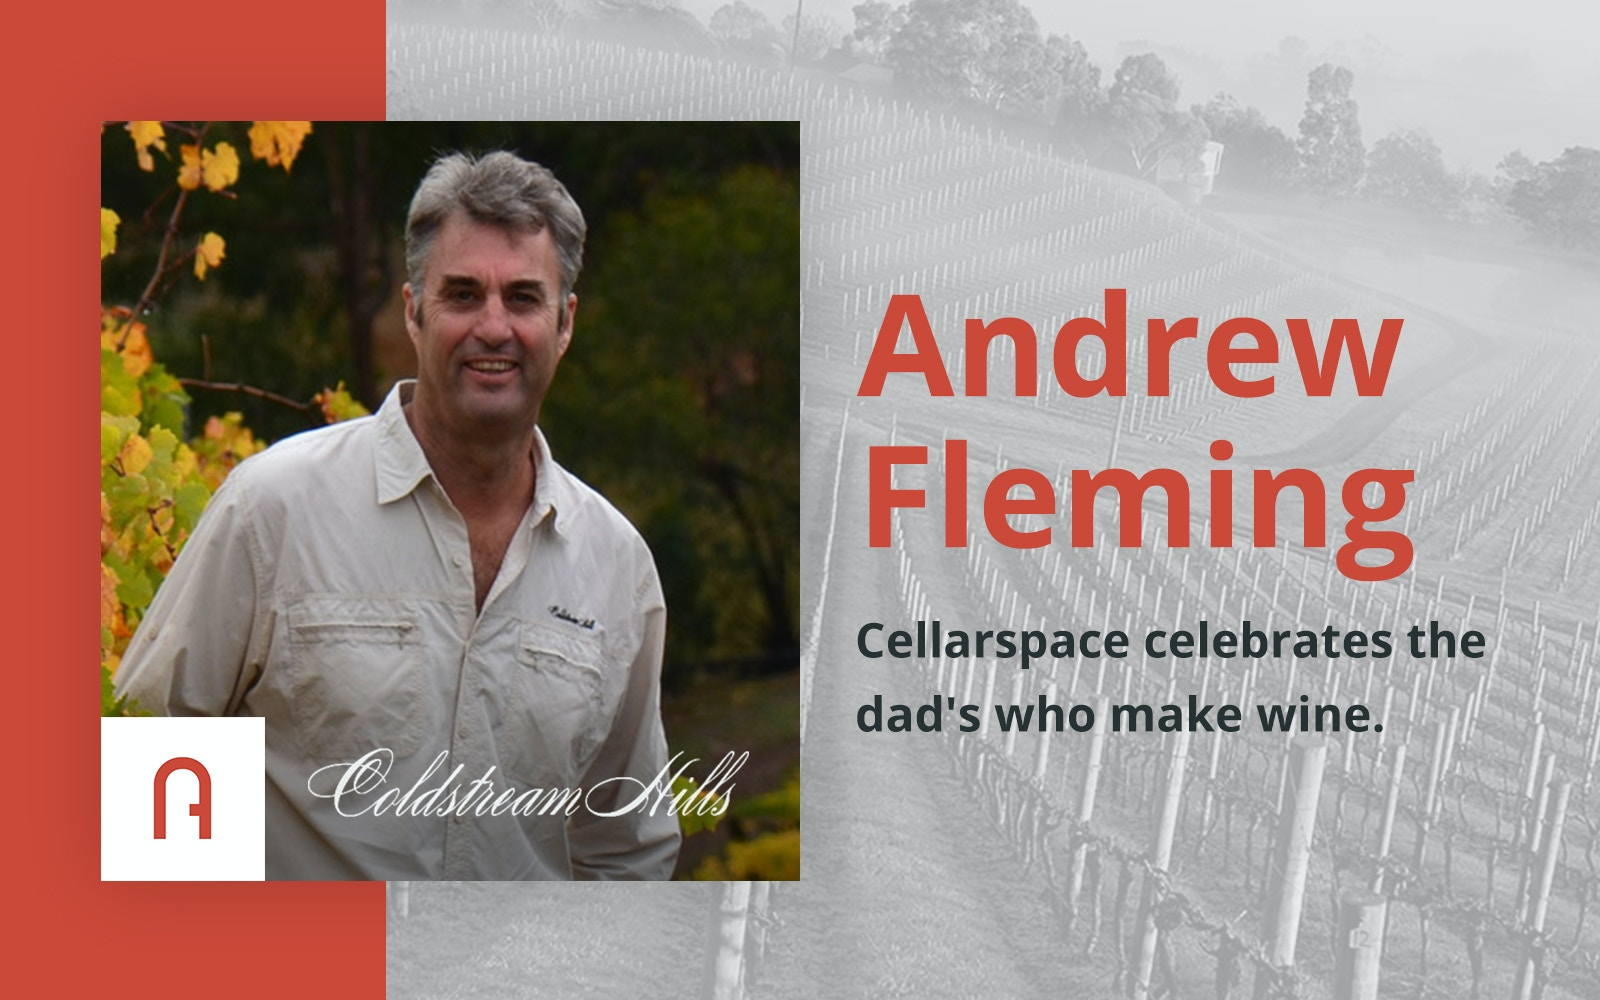 Meet the Winemaker-Andrew Fleming